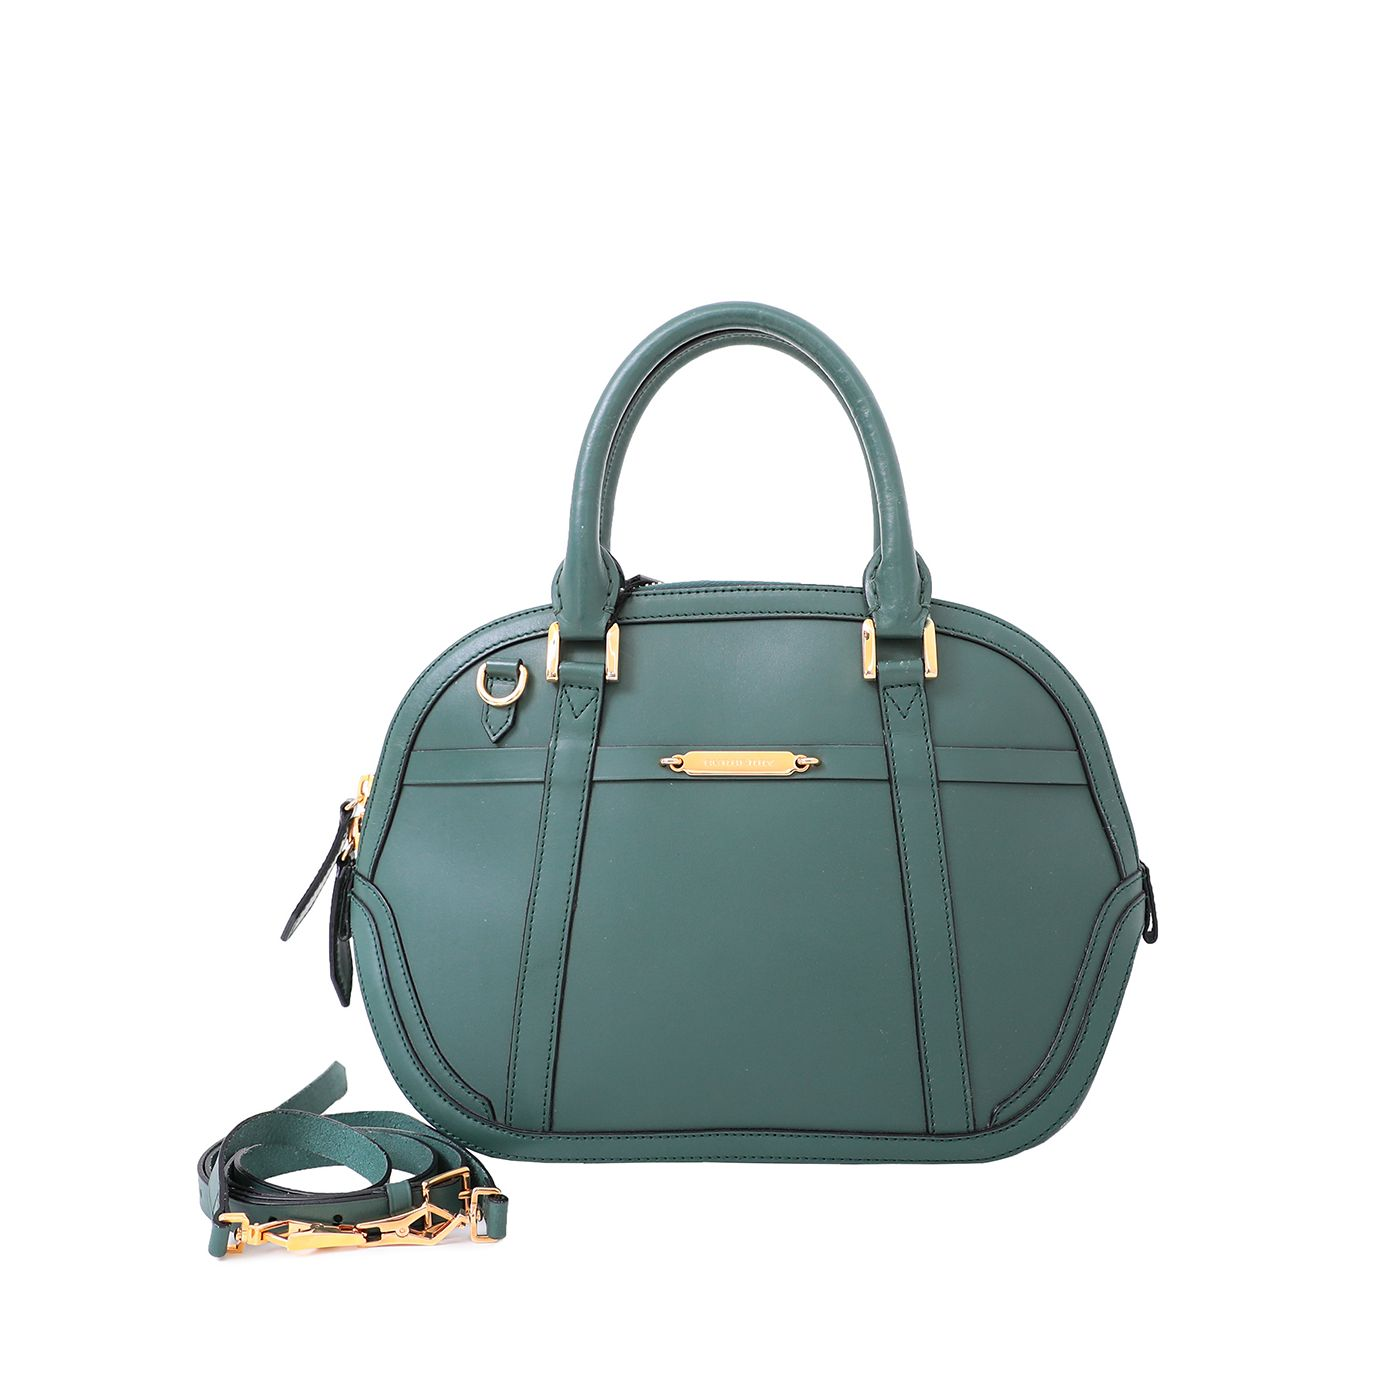 Burberry Green Orchard Satchel Bowler Bag Medium